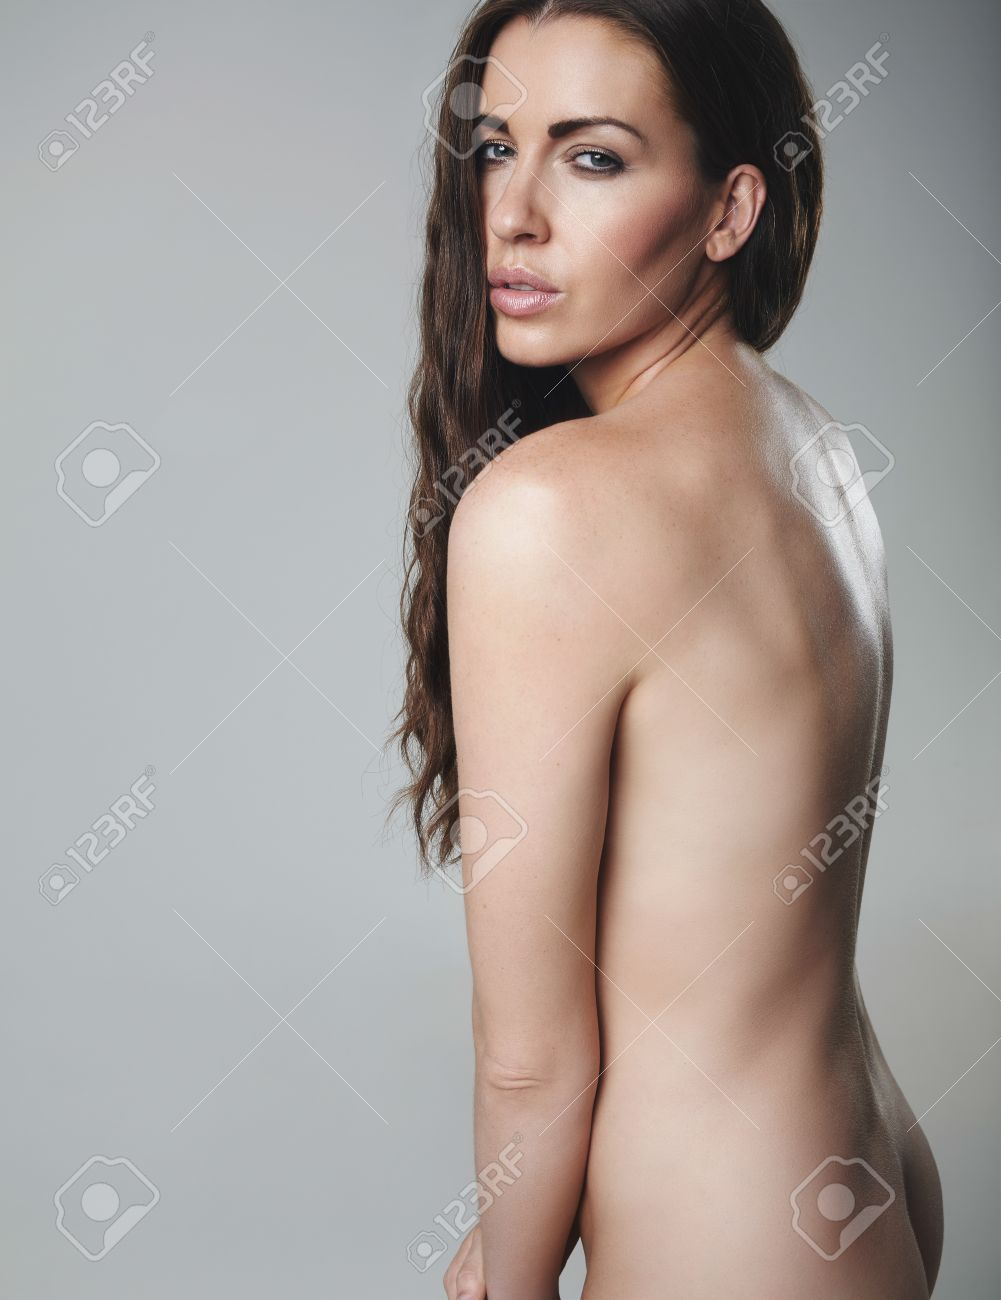 young nude model